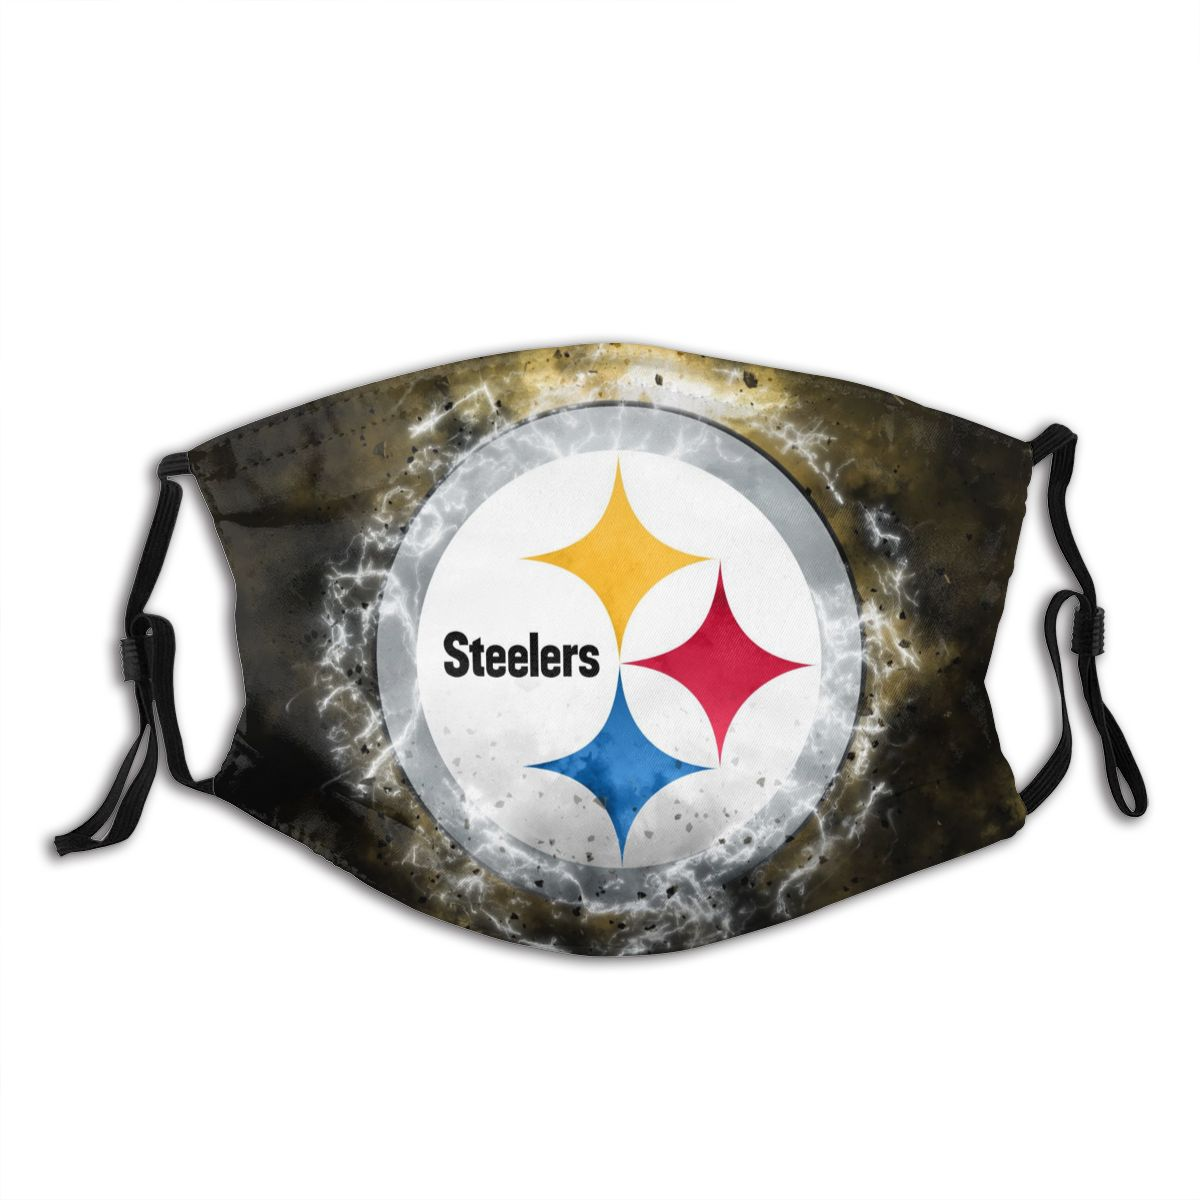 Steelers Illustration Art Adult Cloth Face Covering With Filter